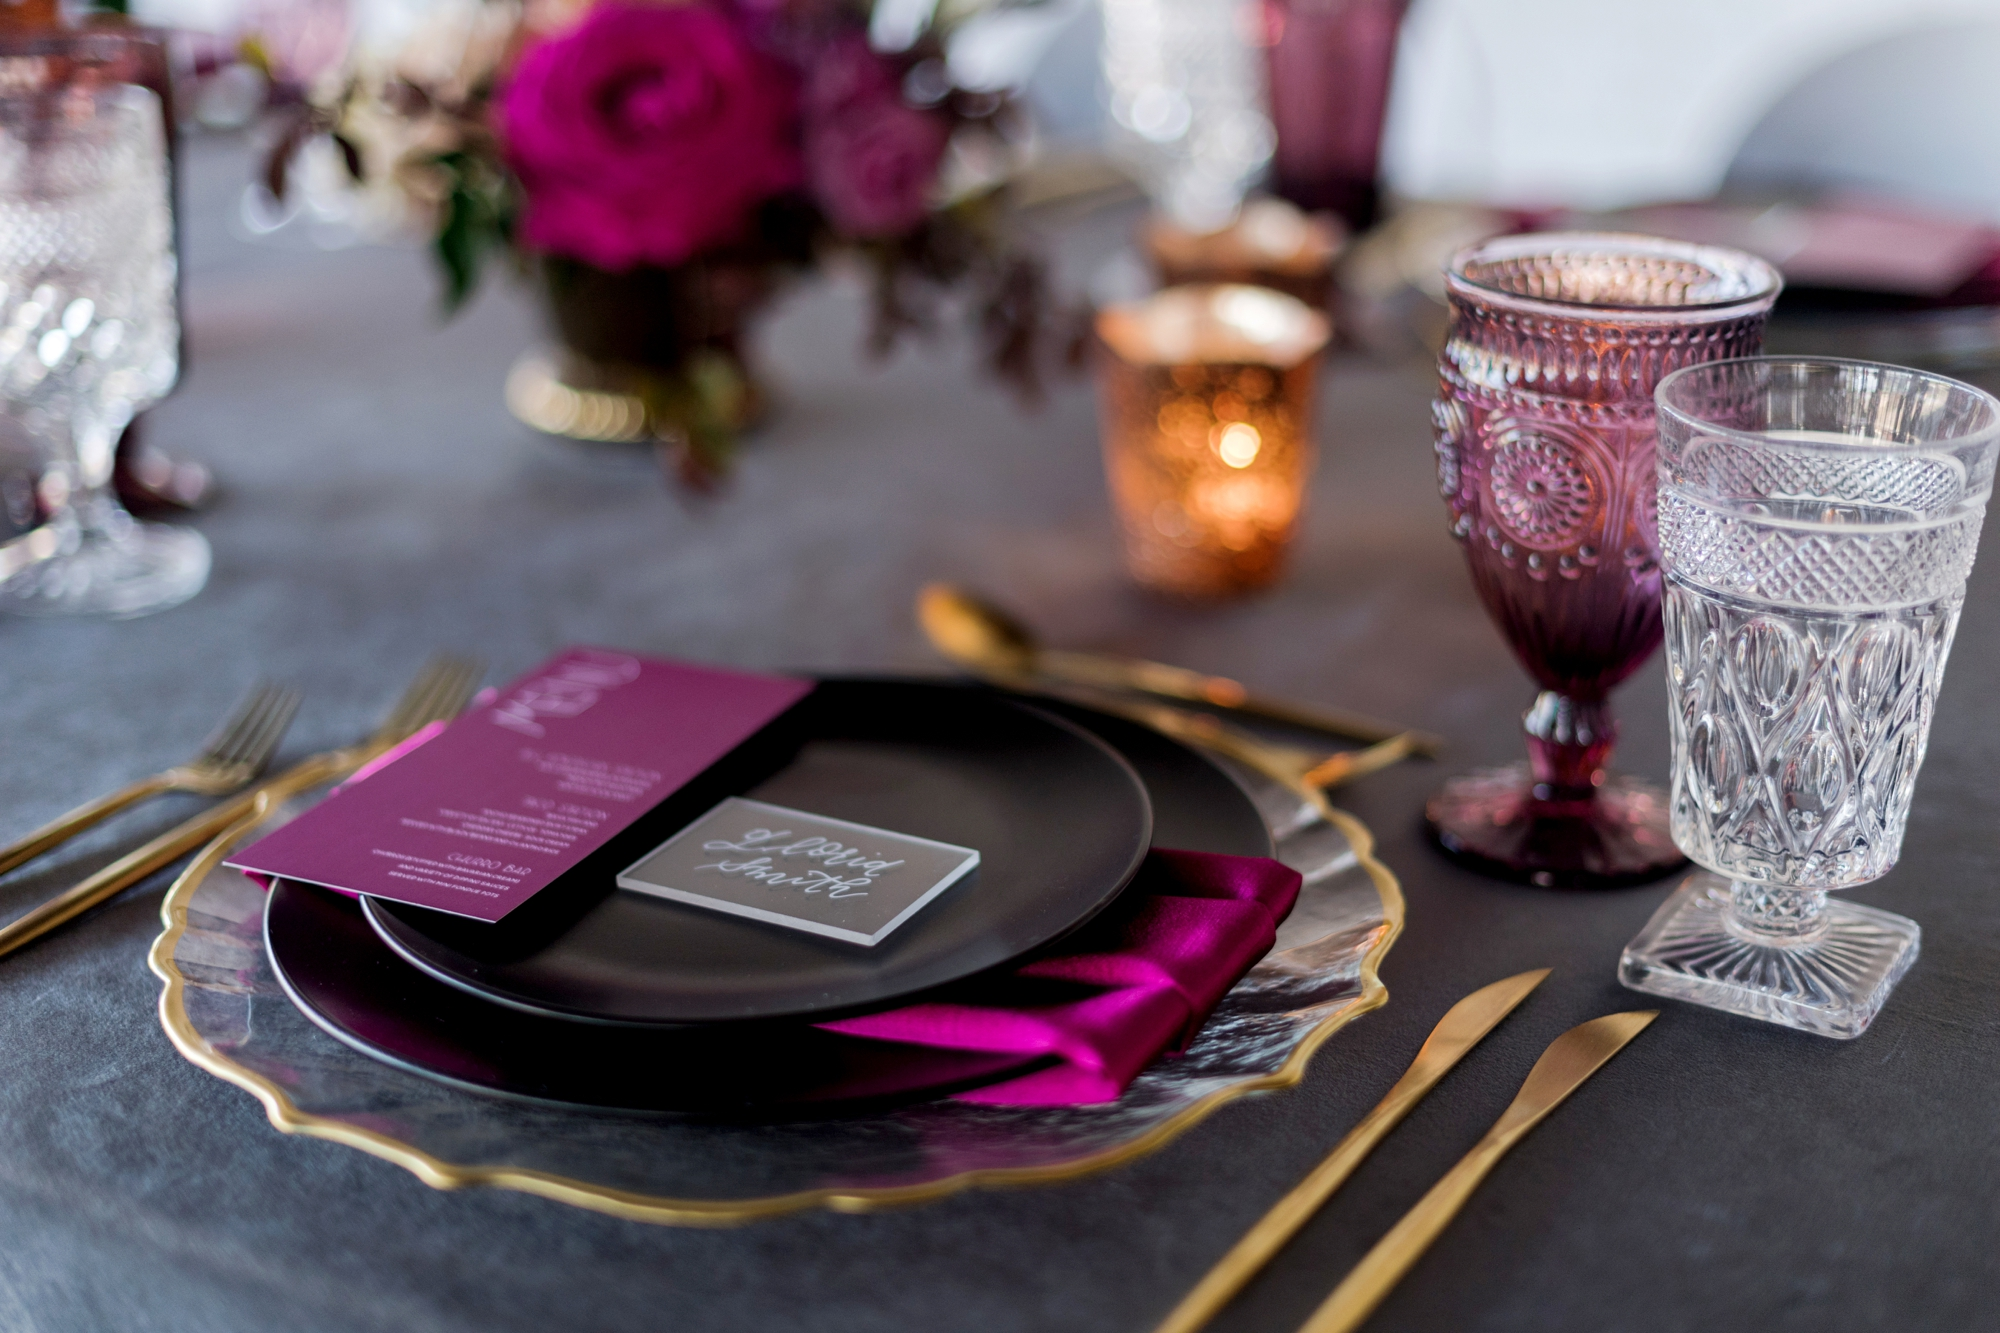 Amethyst And Protea Downtown Loft Wedding Inspiration